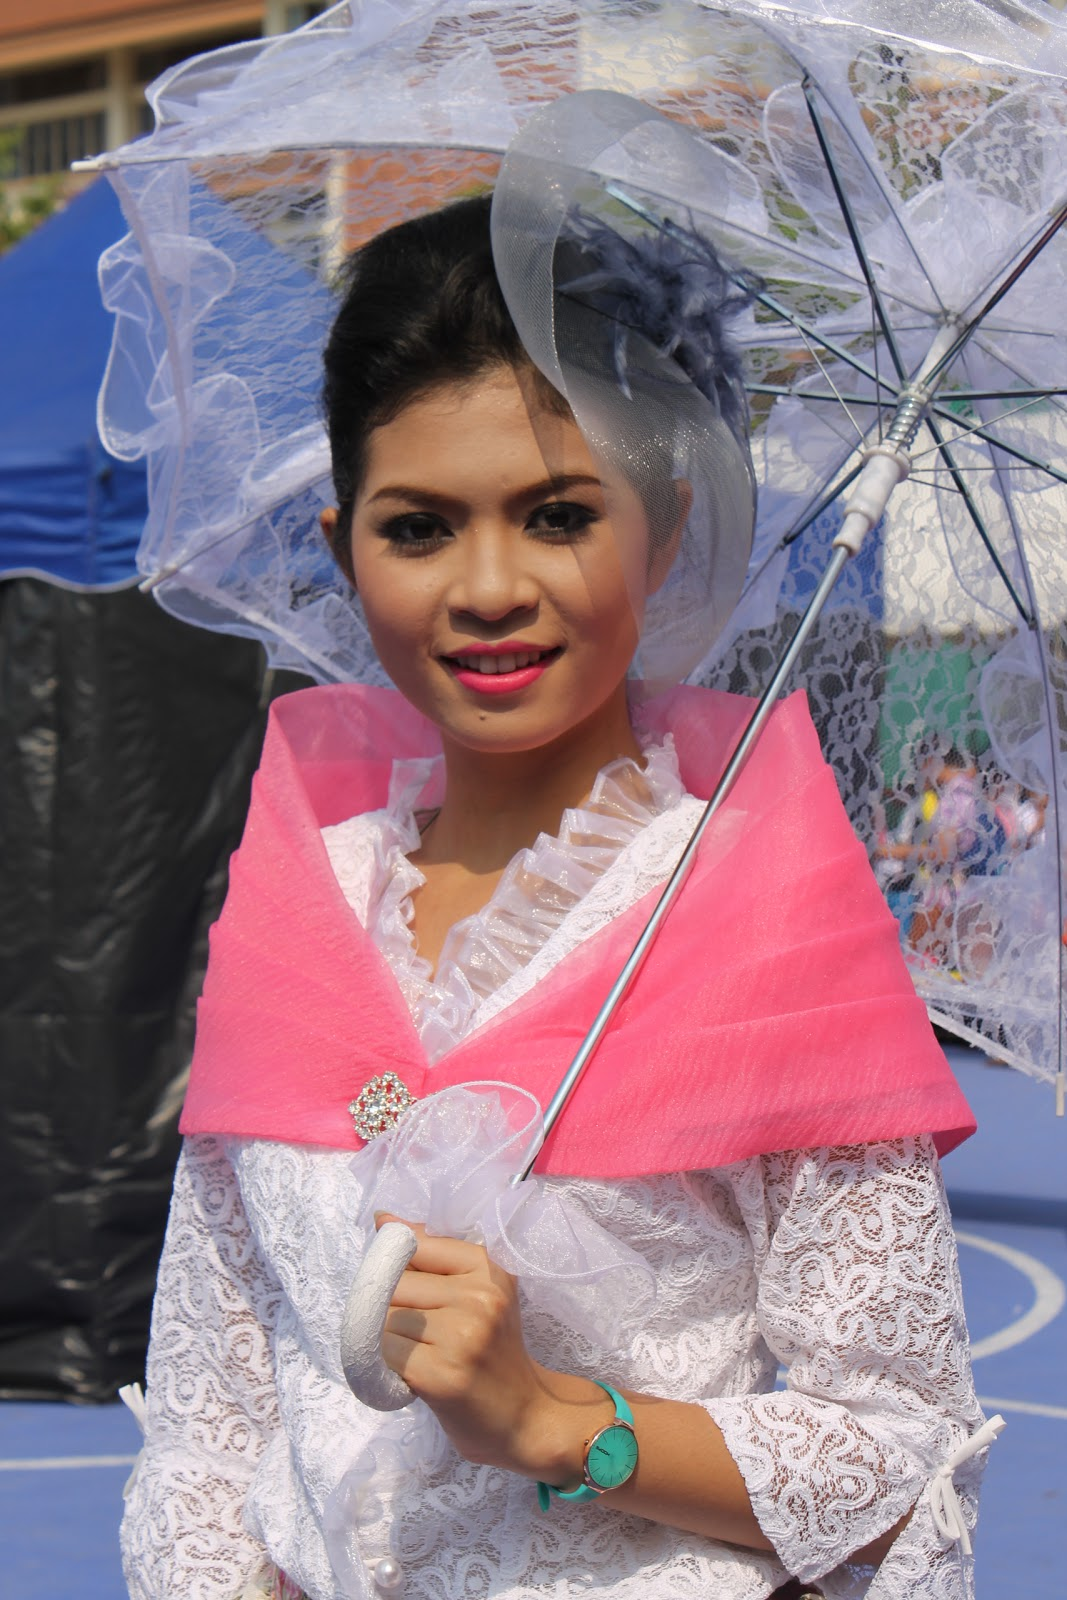 Philippine Costume of Maria Clara http://www.lonerzone.com/2012/01/rekindling-pinoy-spirit.html